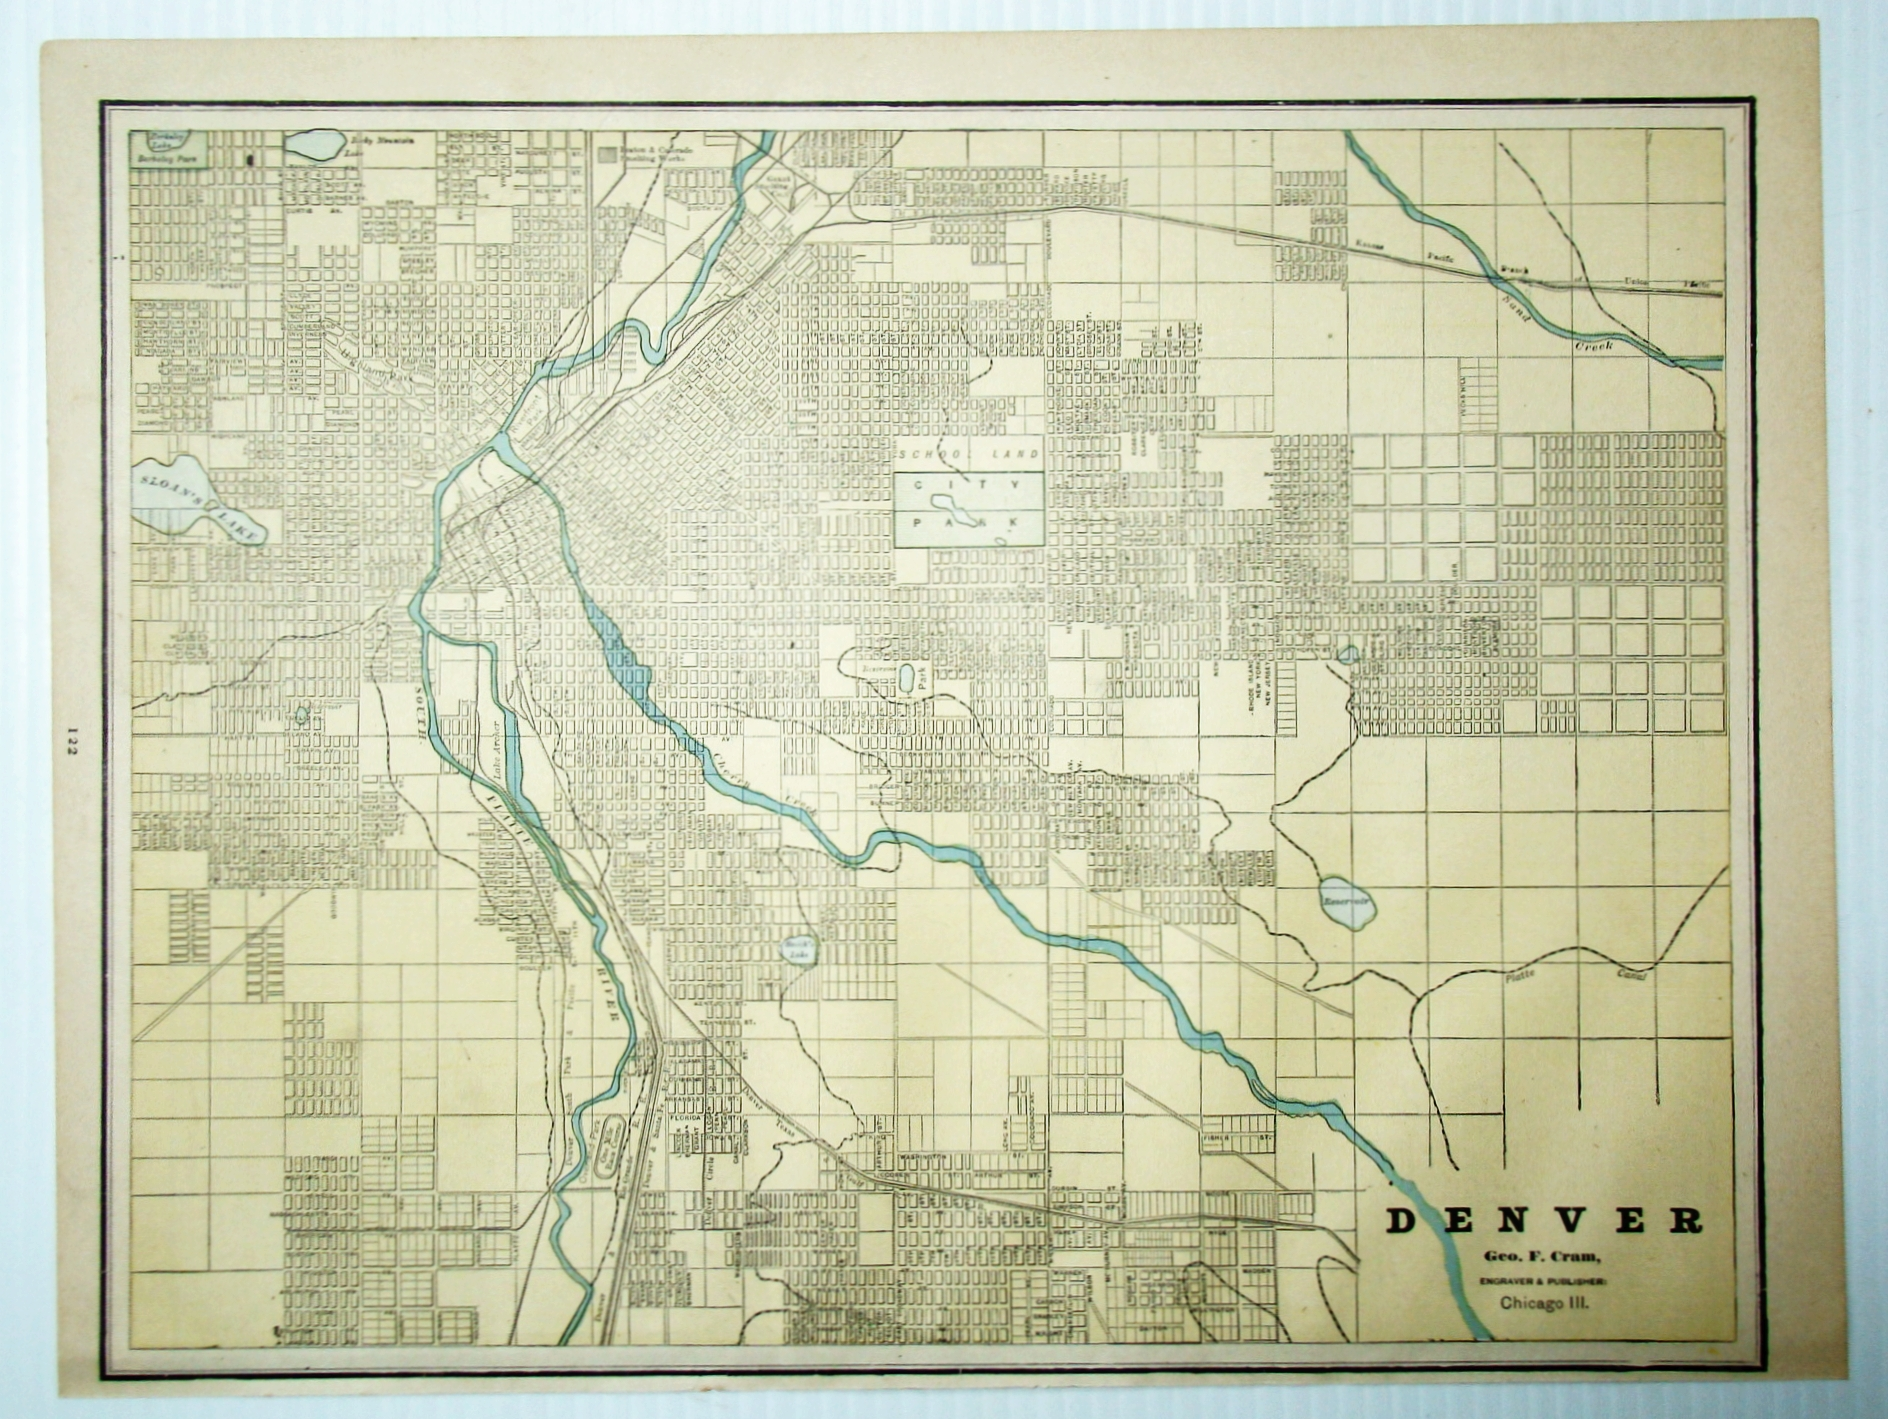 1889 Color Map of the City of Denver, ... on san diego, boulder colorado map, centennial colorado map, missoula montana map, rocky mountains, evans colorado map, salt lake city, las vegas map, lakewood colorado map, colorado state map, casper wyoming map, elizabeth colorado map, colorado springs, estes park colorado map, denver tech center, colorado rockies map, new orleans, castle rock co map, federal heights colorado map, colorado us map, loveland colorado map, sterling colorado map, san antonio, usa map, united states map, kansas city,